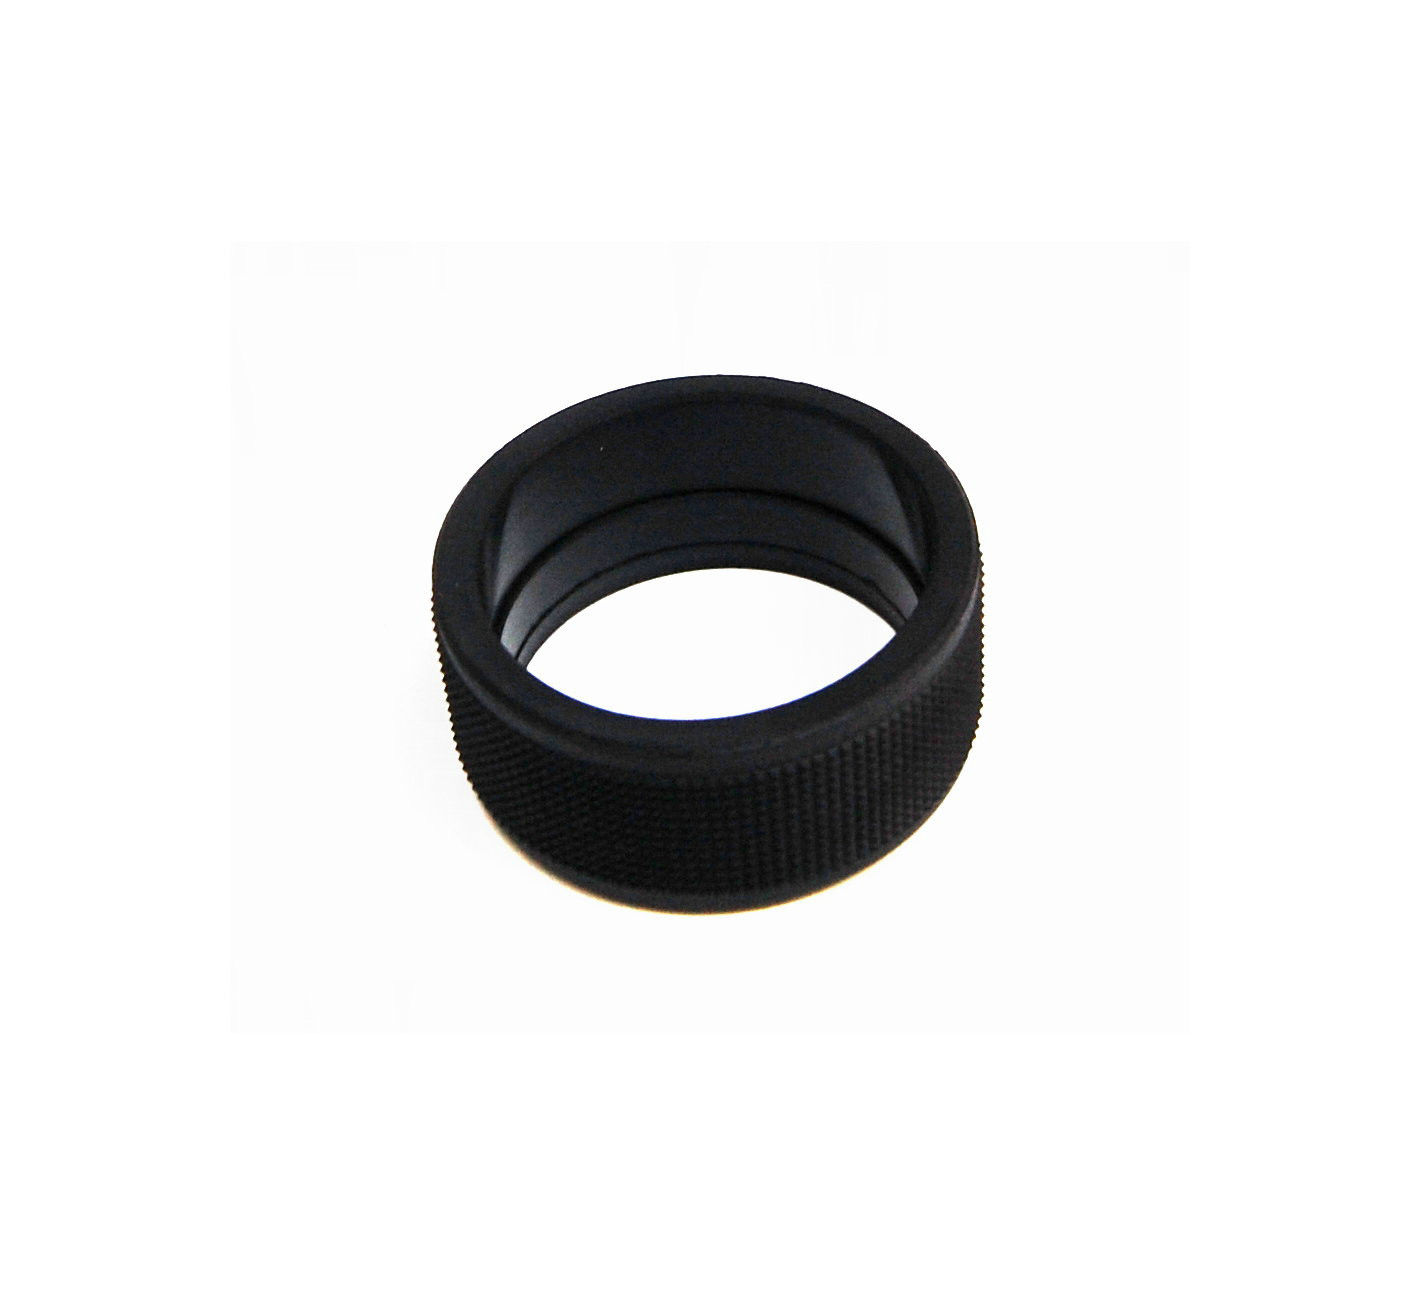 Yaesu Rubber Ring for Main Dial Knob for FT-897 FT-897D FT897